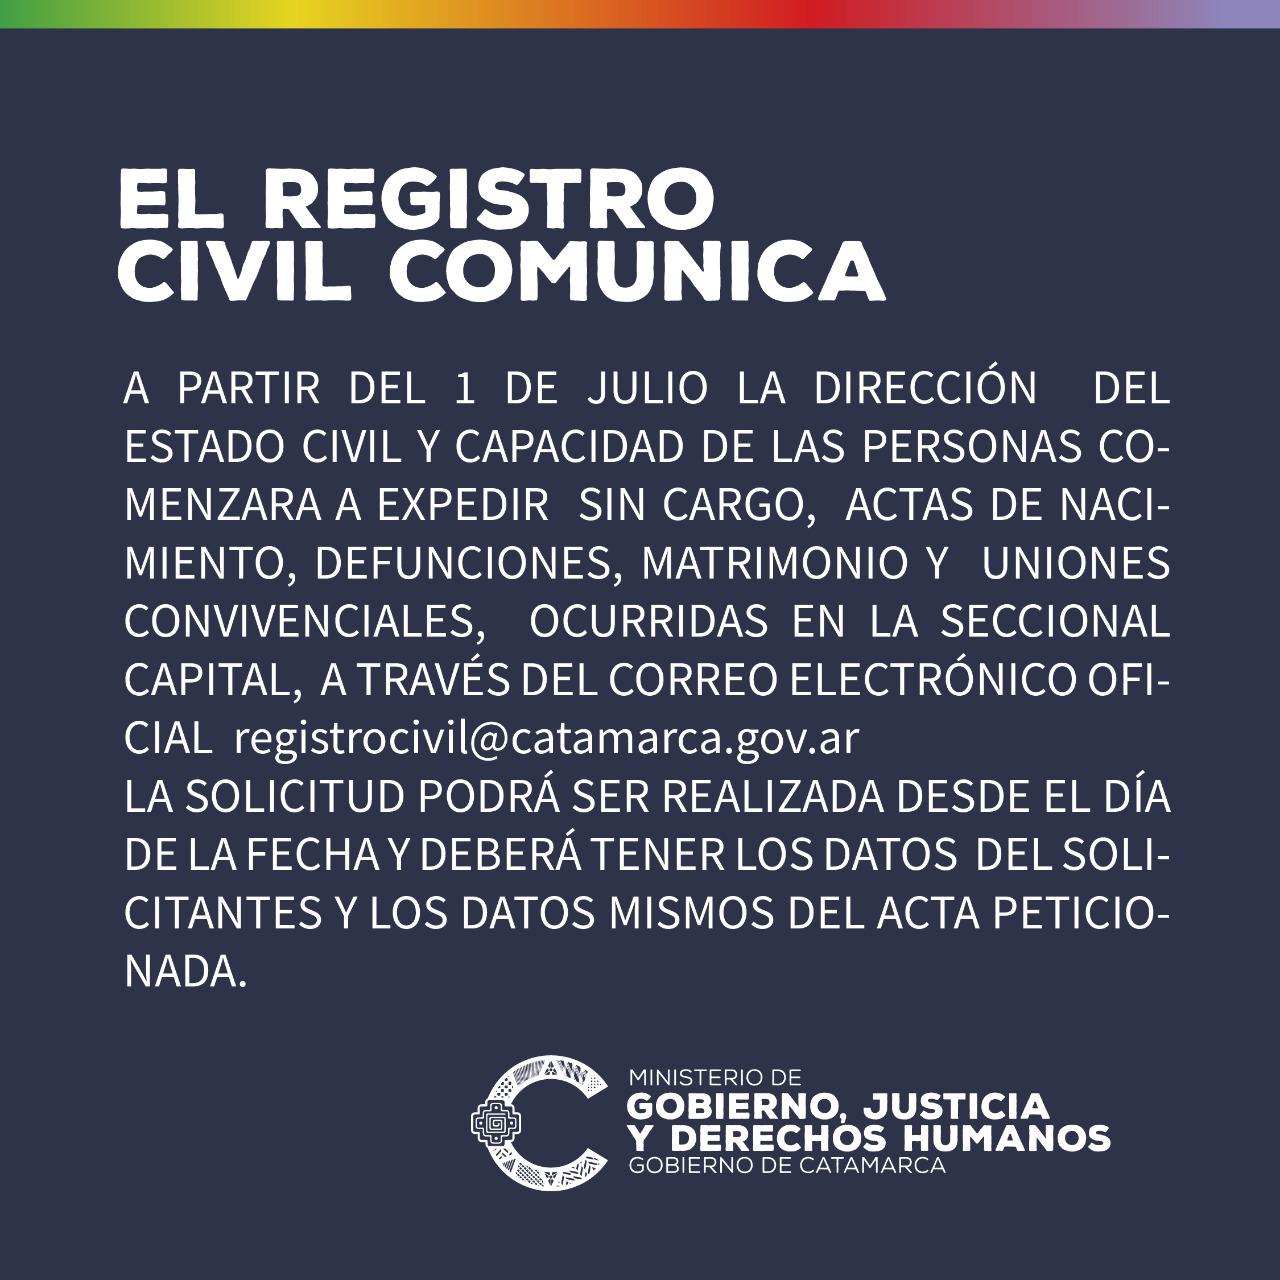 Registro Civil ok 2